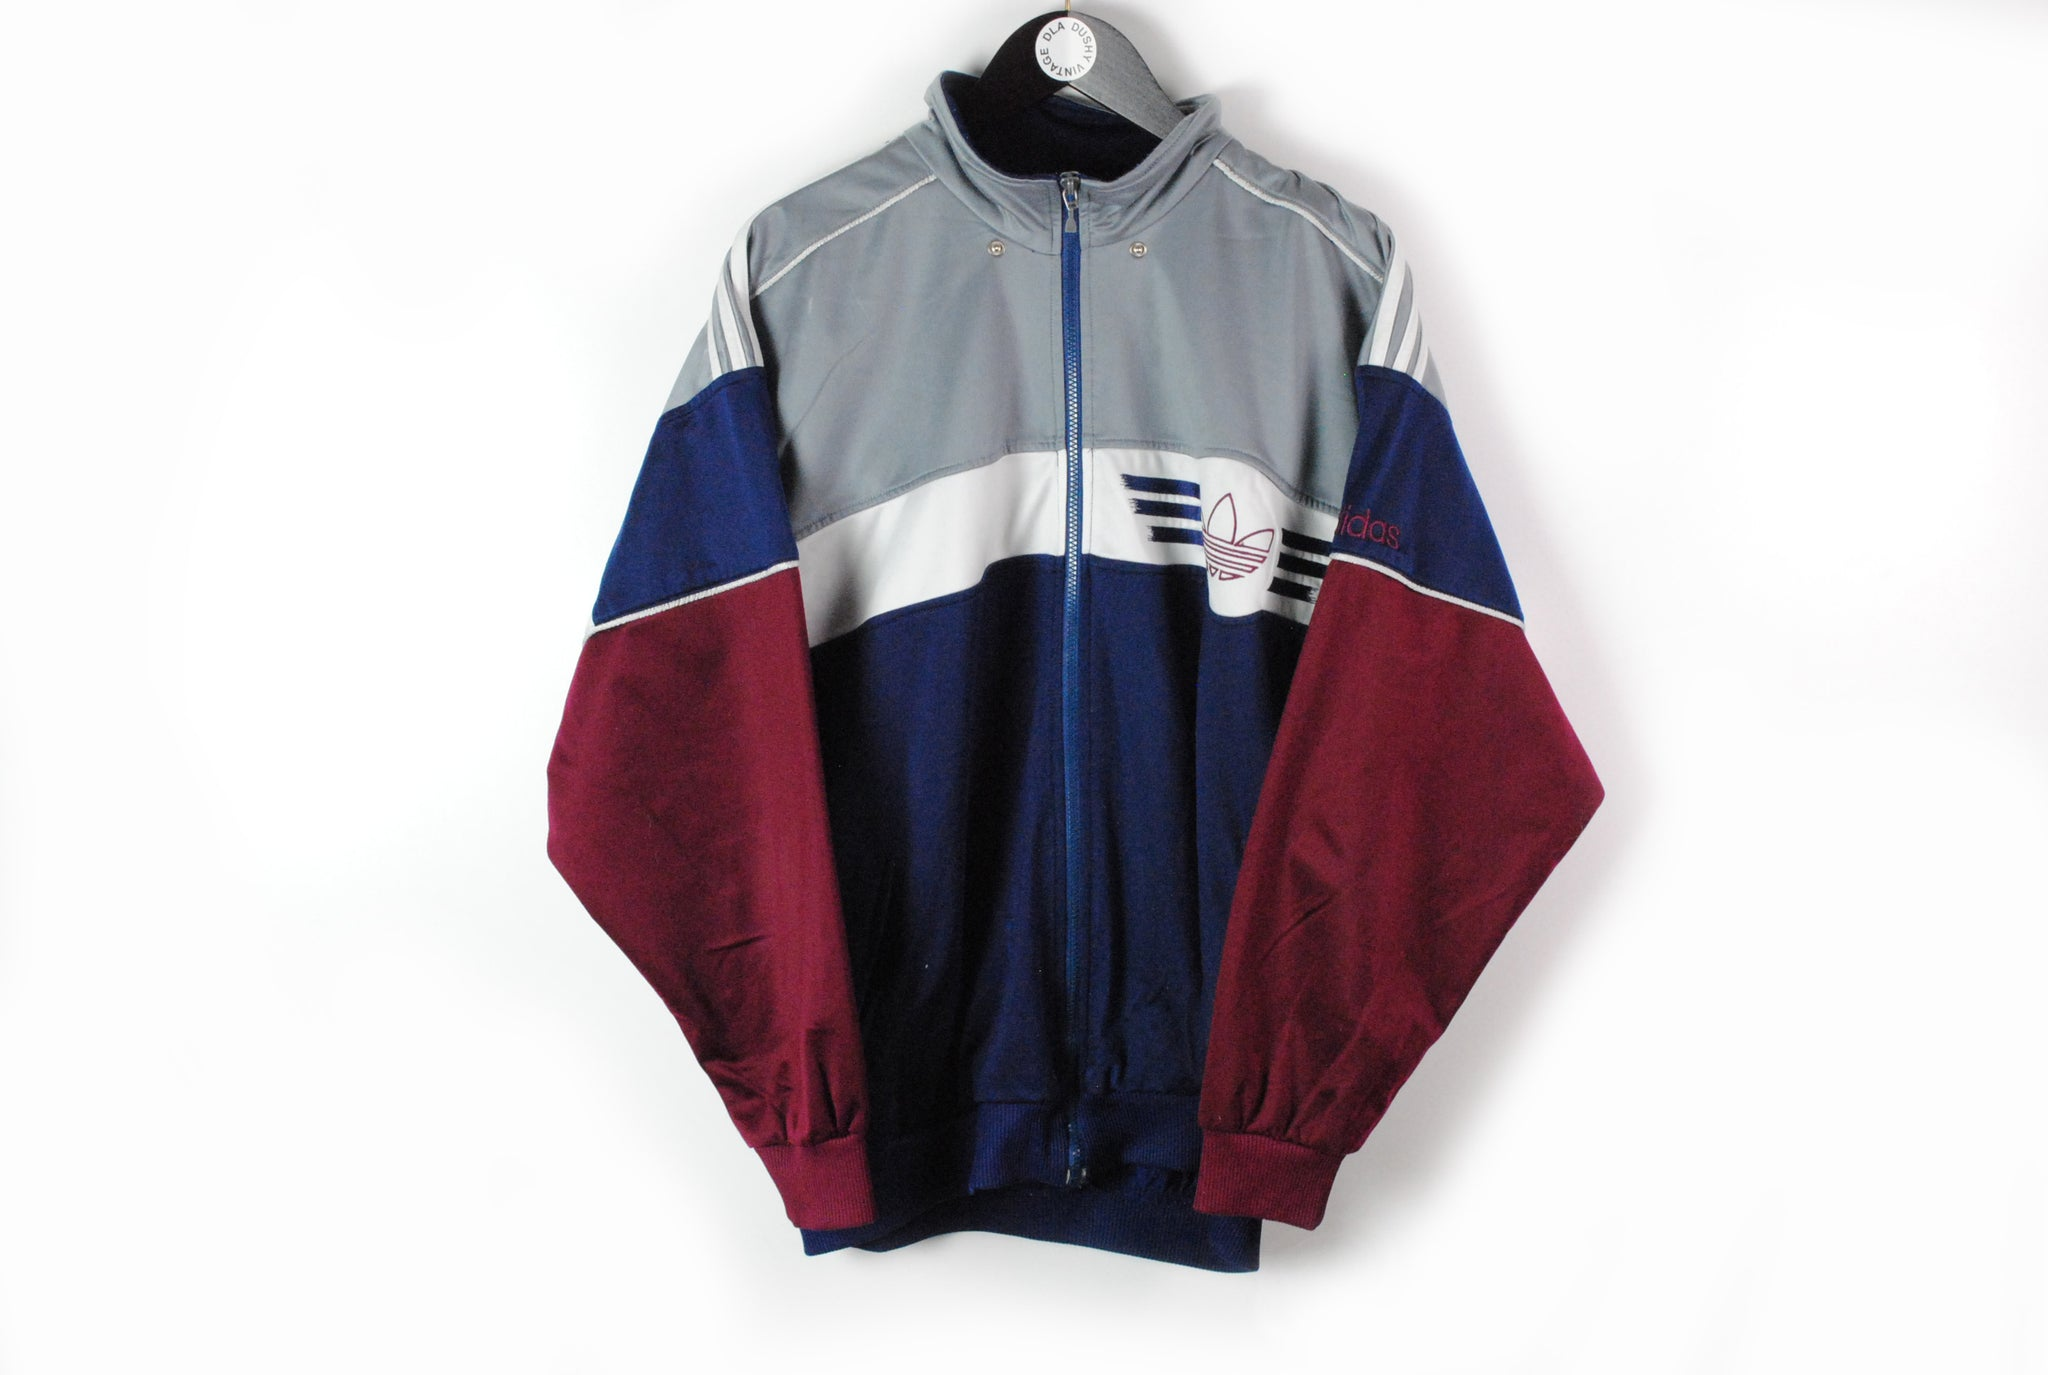 Vintage Adidas Track Jacket Large  big logo 90s sport style retro wear athletic windbreaker